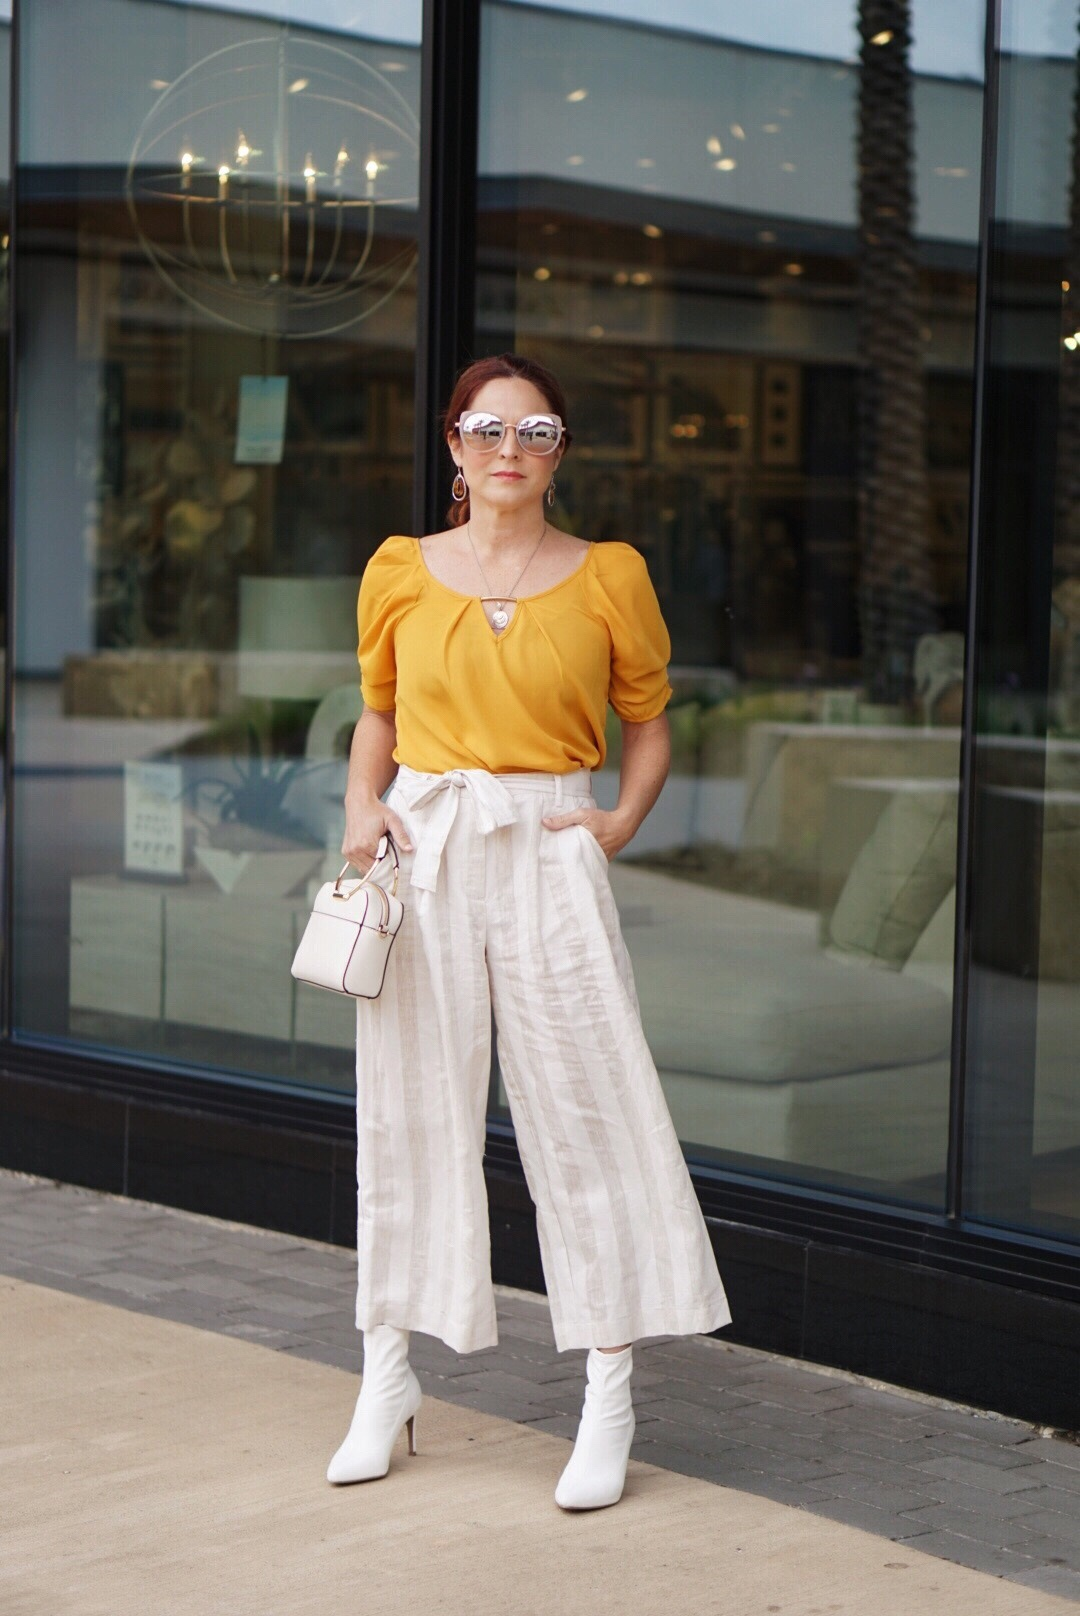 how to style culottes, flattering pants, paper bag waist, mustard yellow top, target handbags, white sock booties, target style, red hair inspiration, culotte outfits